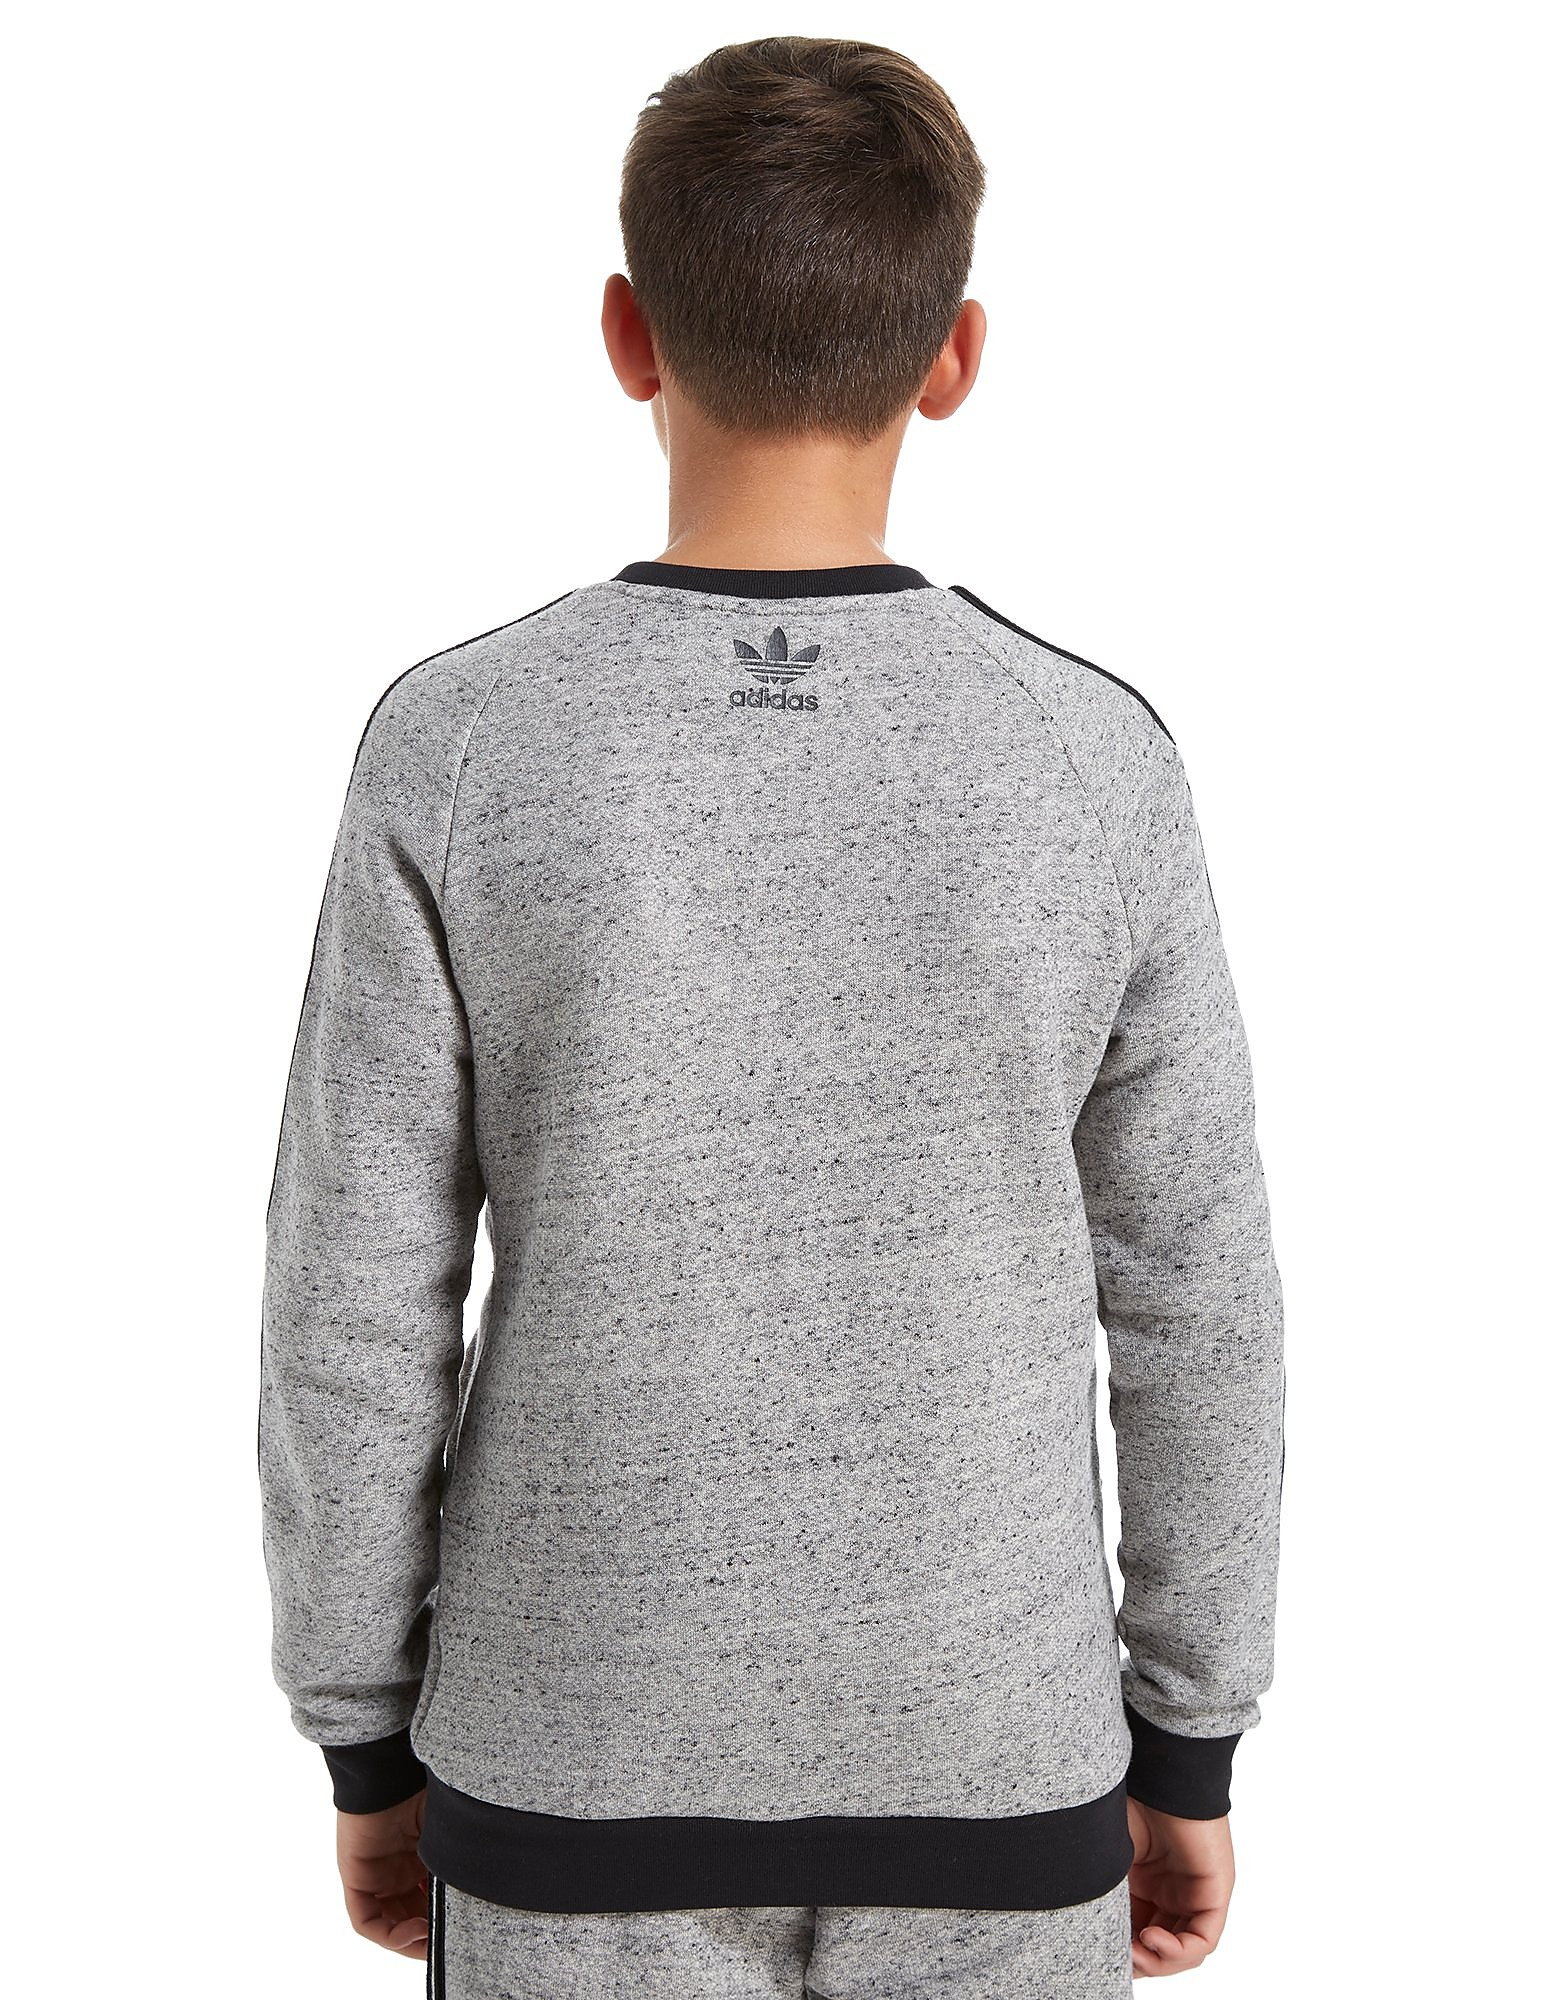 adidas Originals Trefoil Series Crew Sweatshirt Junior